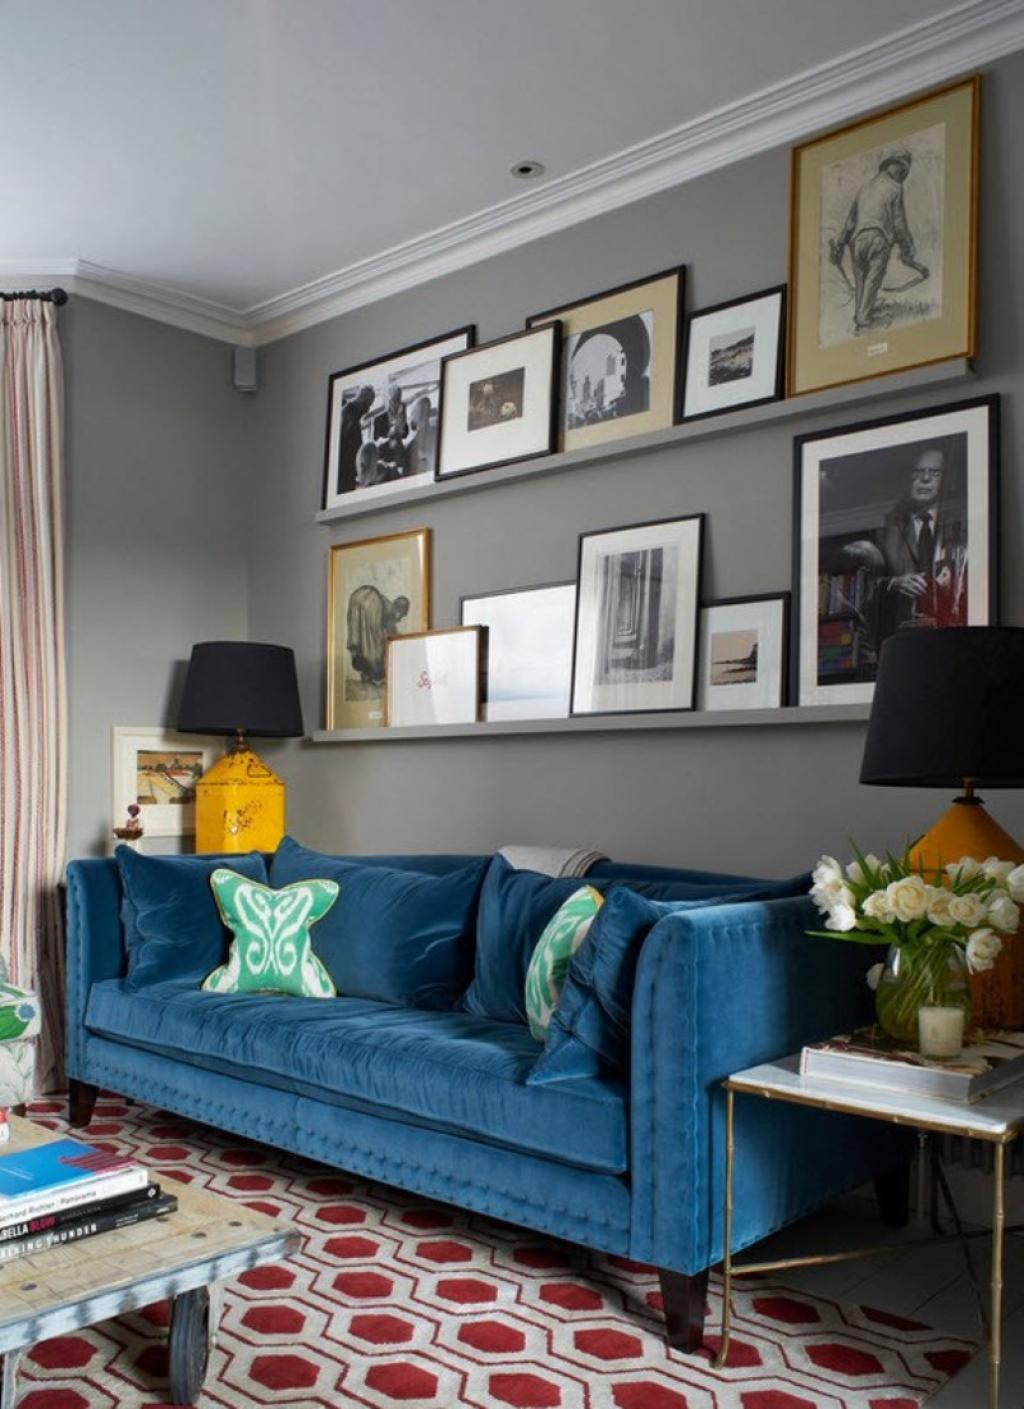 fashionable-living-room-design-in-minimalist-style-also-frame-on-simple-wall-shelves-including-turquoise-sofa-also-gray-painting-wall